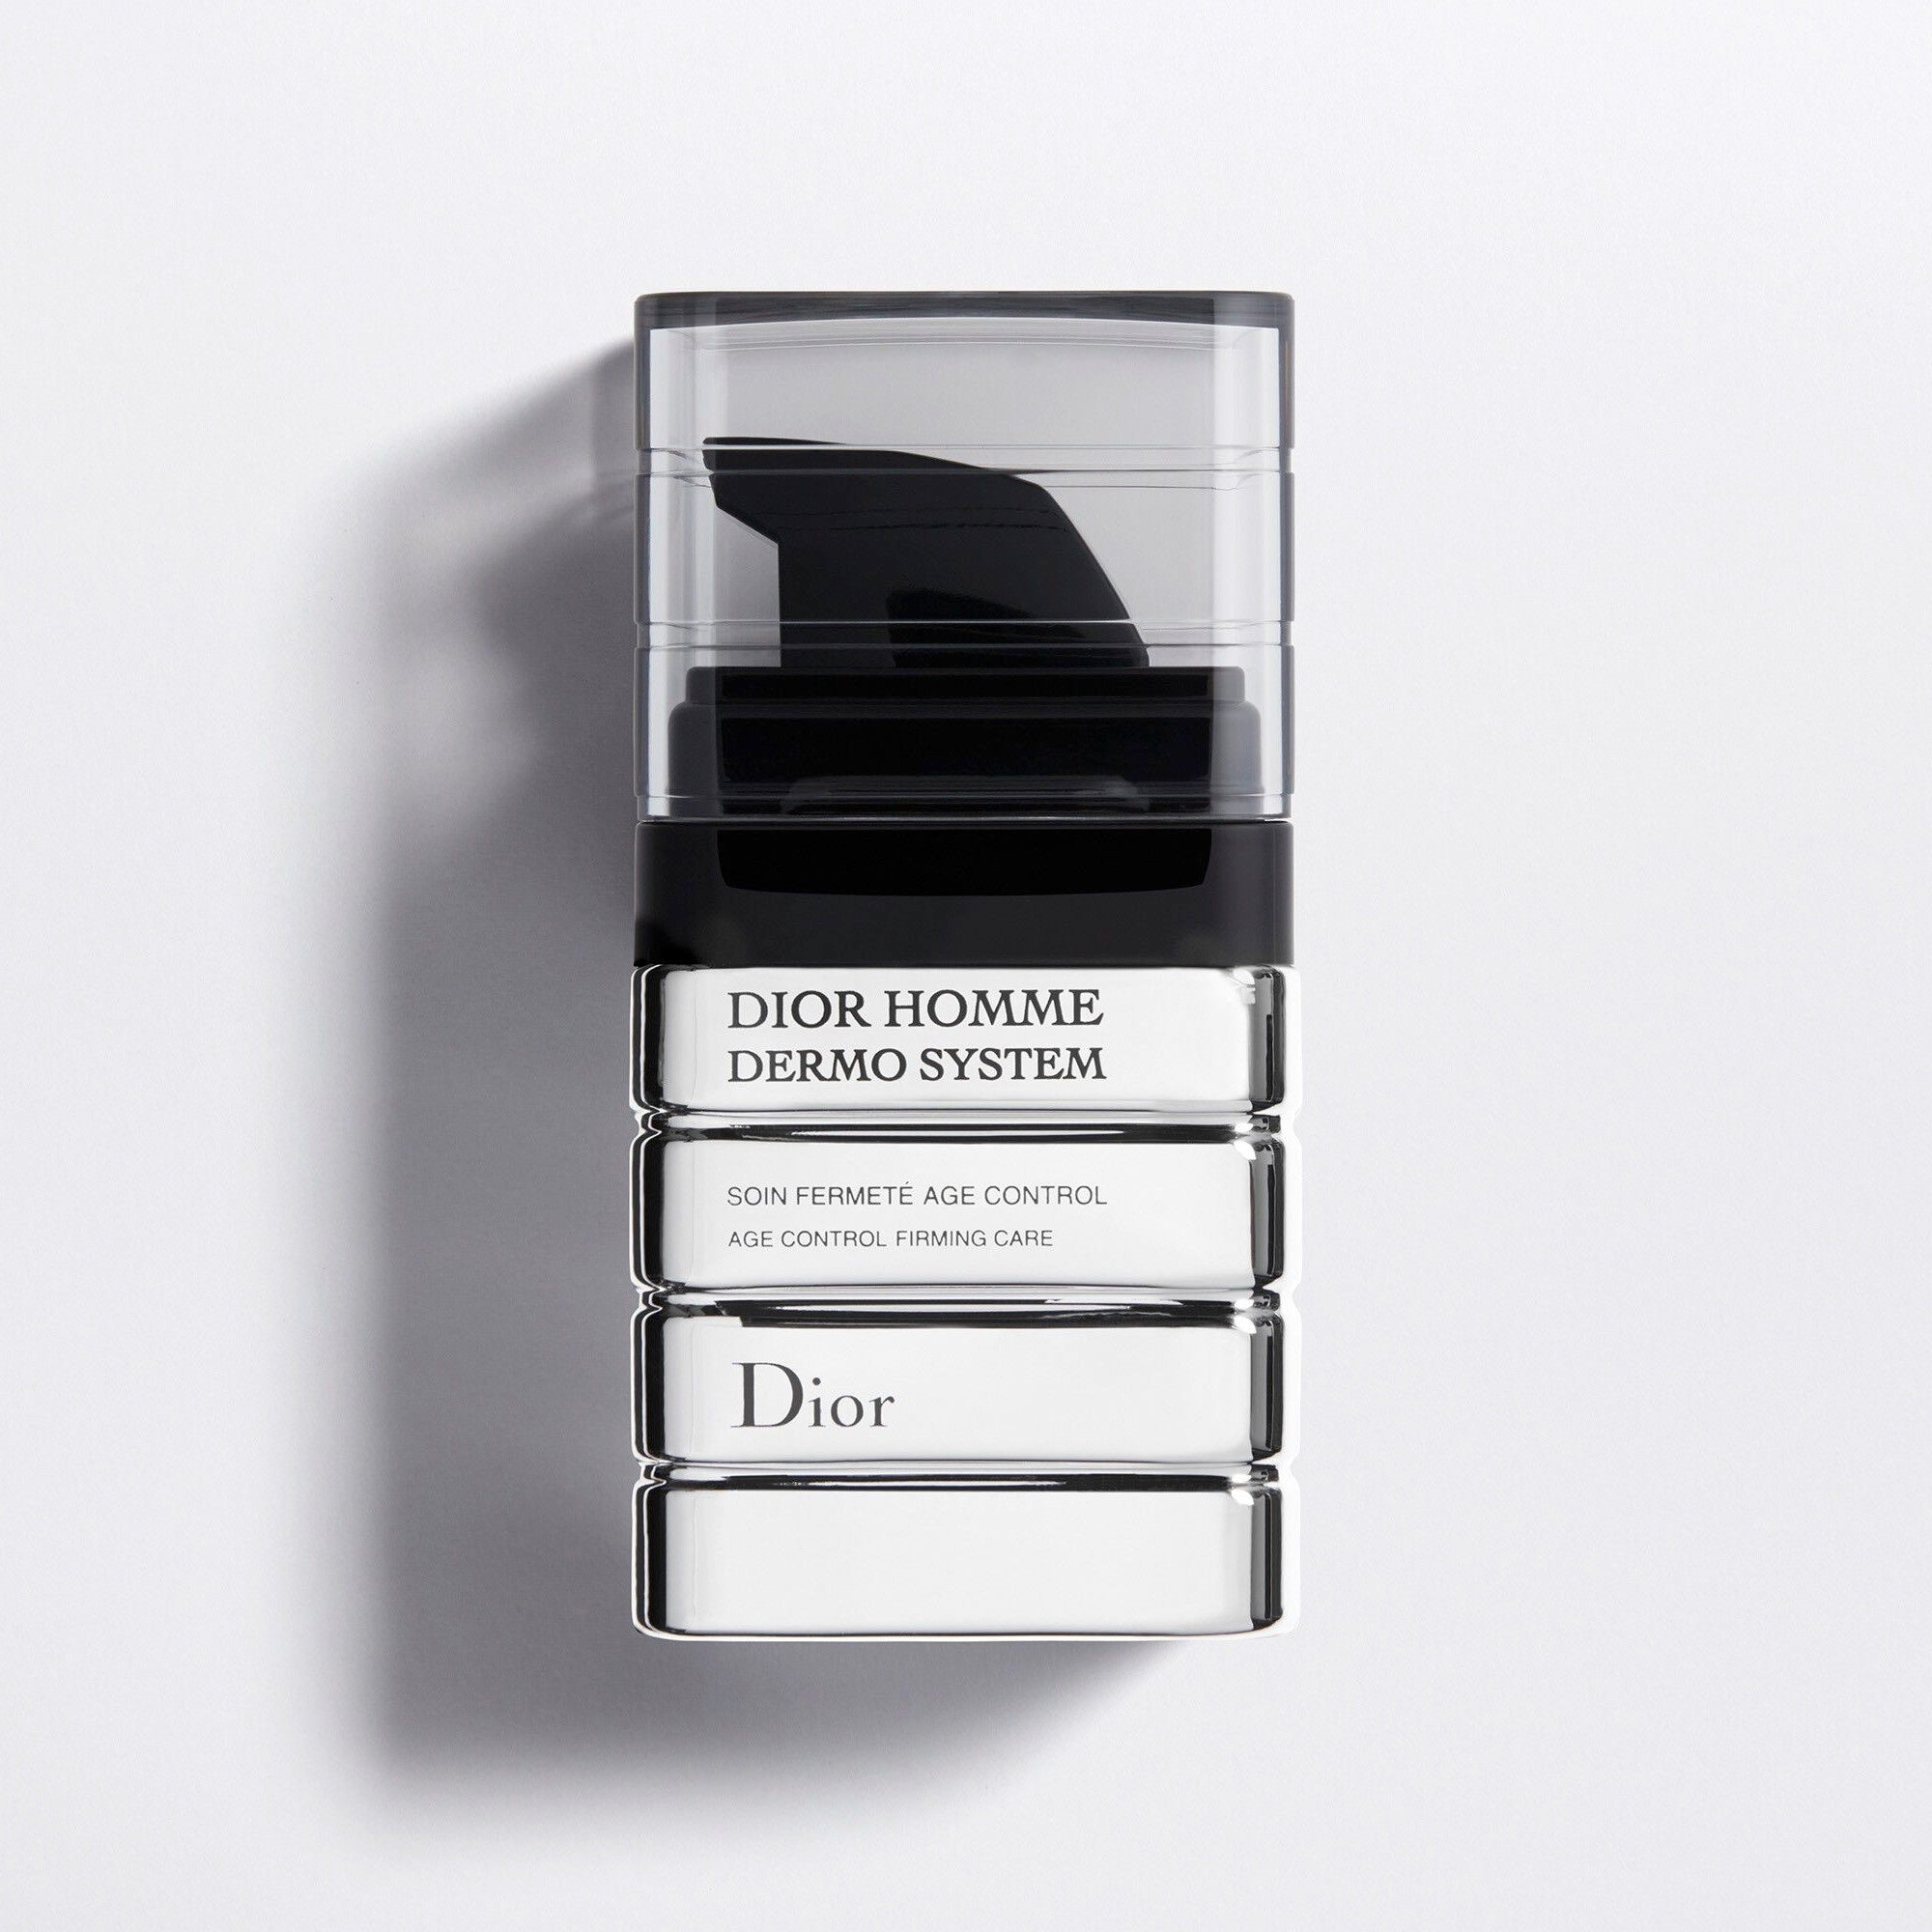 DIOR HOMME DERMO SYSTEM | Age Control Firming Care - Bio-Fermented Ingredient & Vitamin E Phosphate